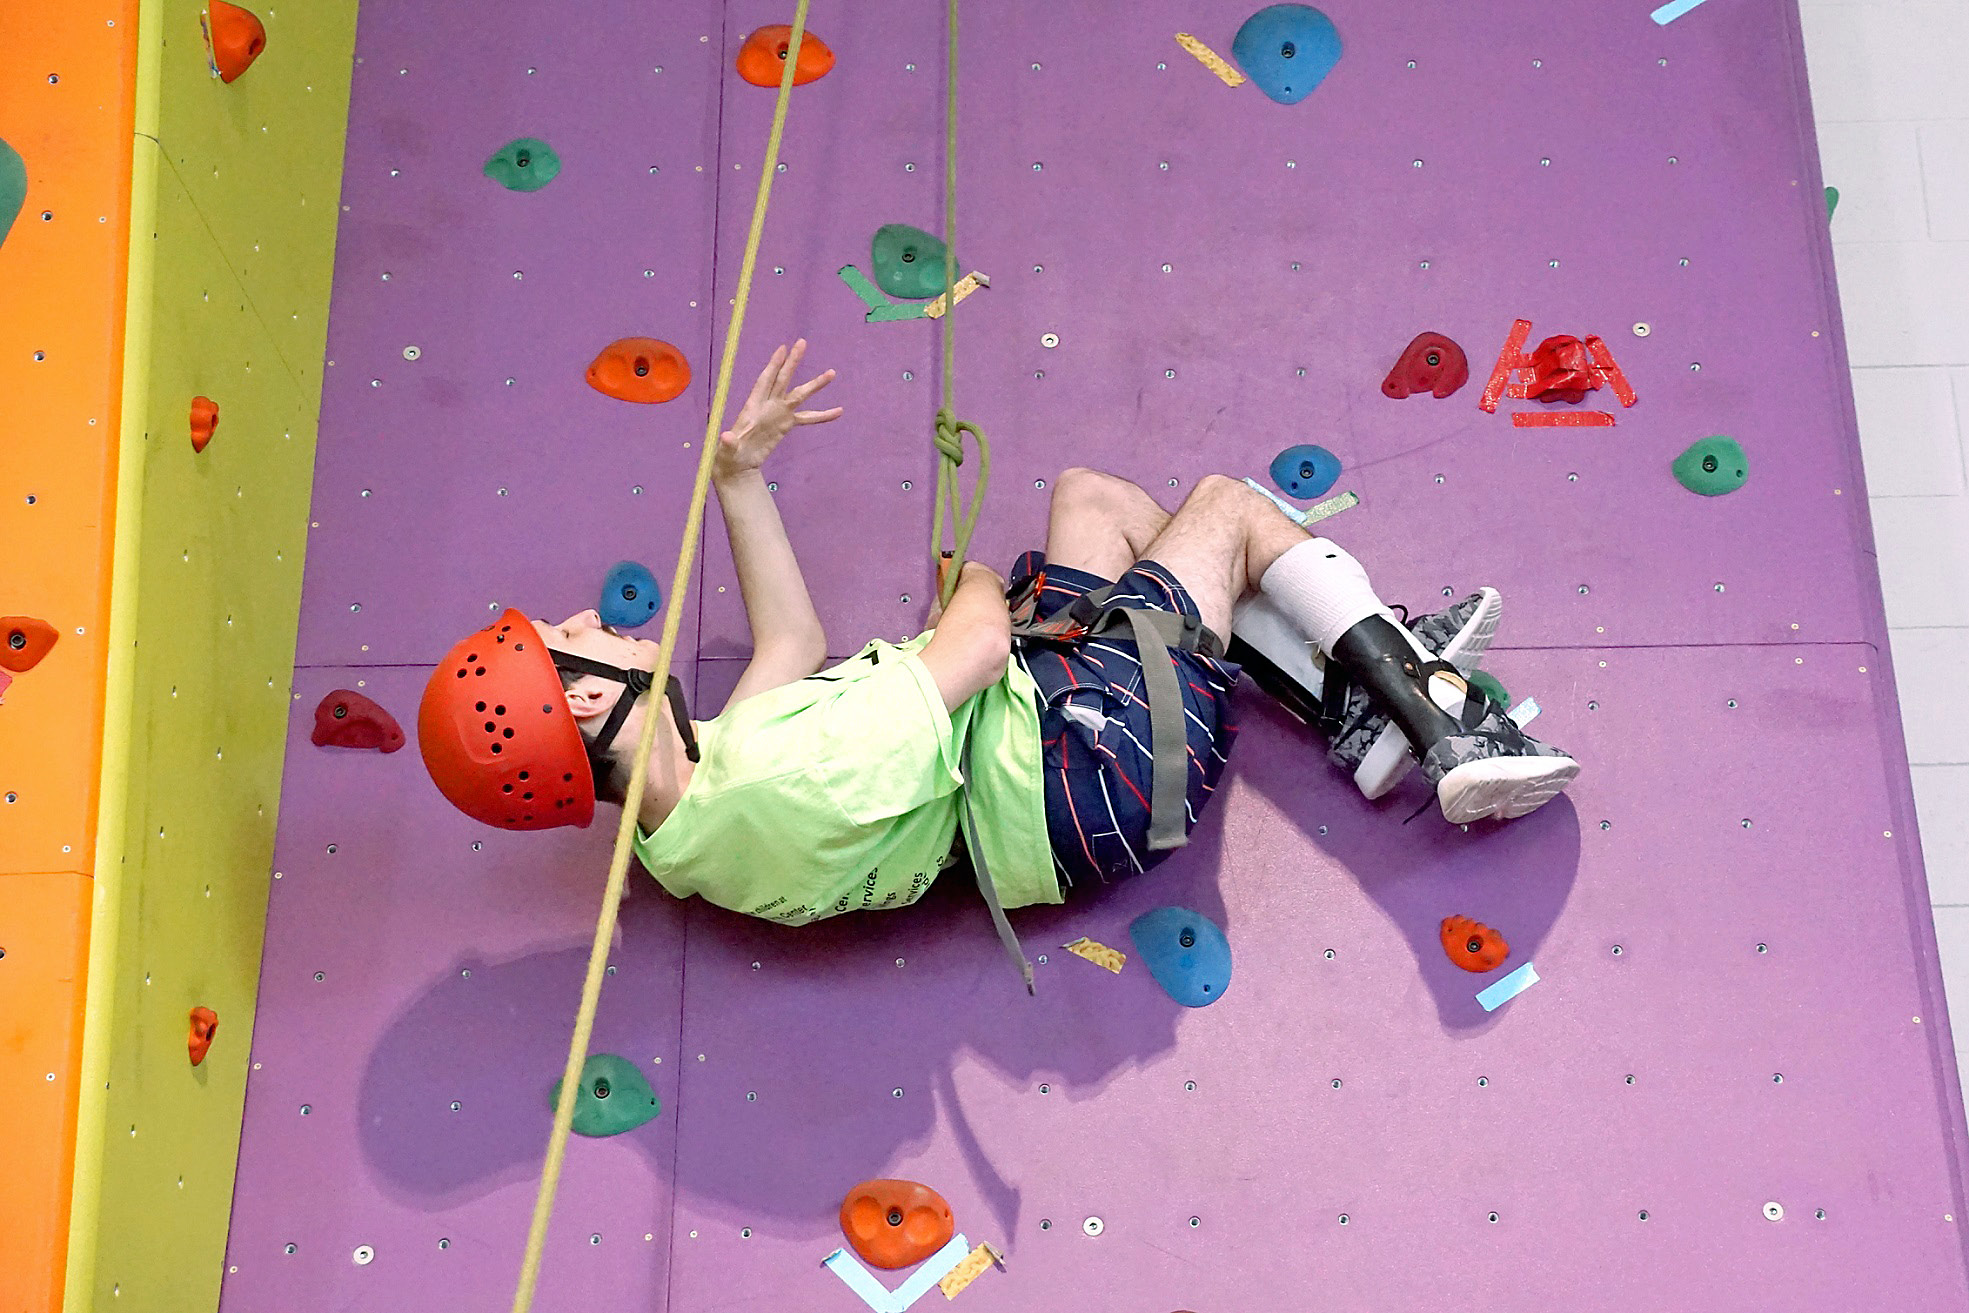 EOC_Climbing Wall_small_edited